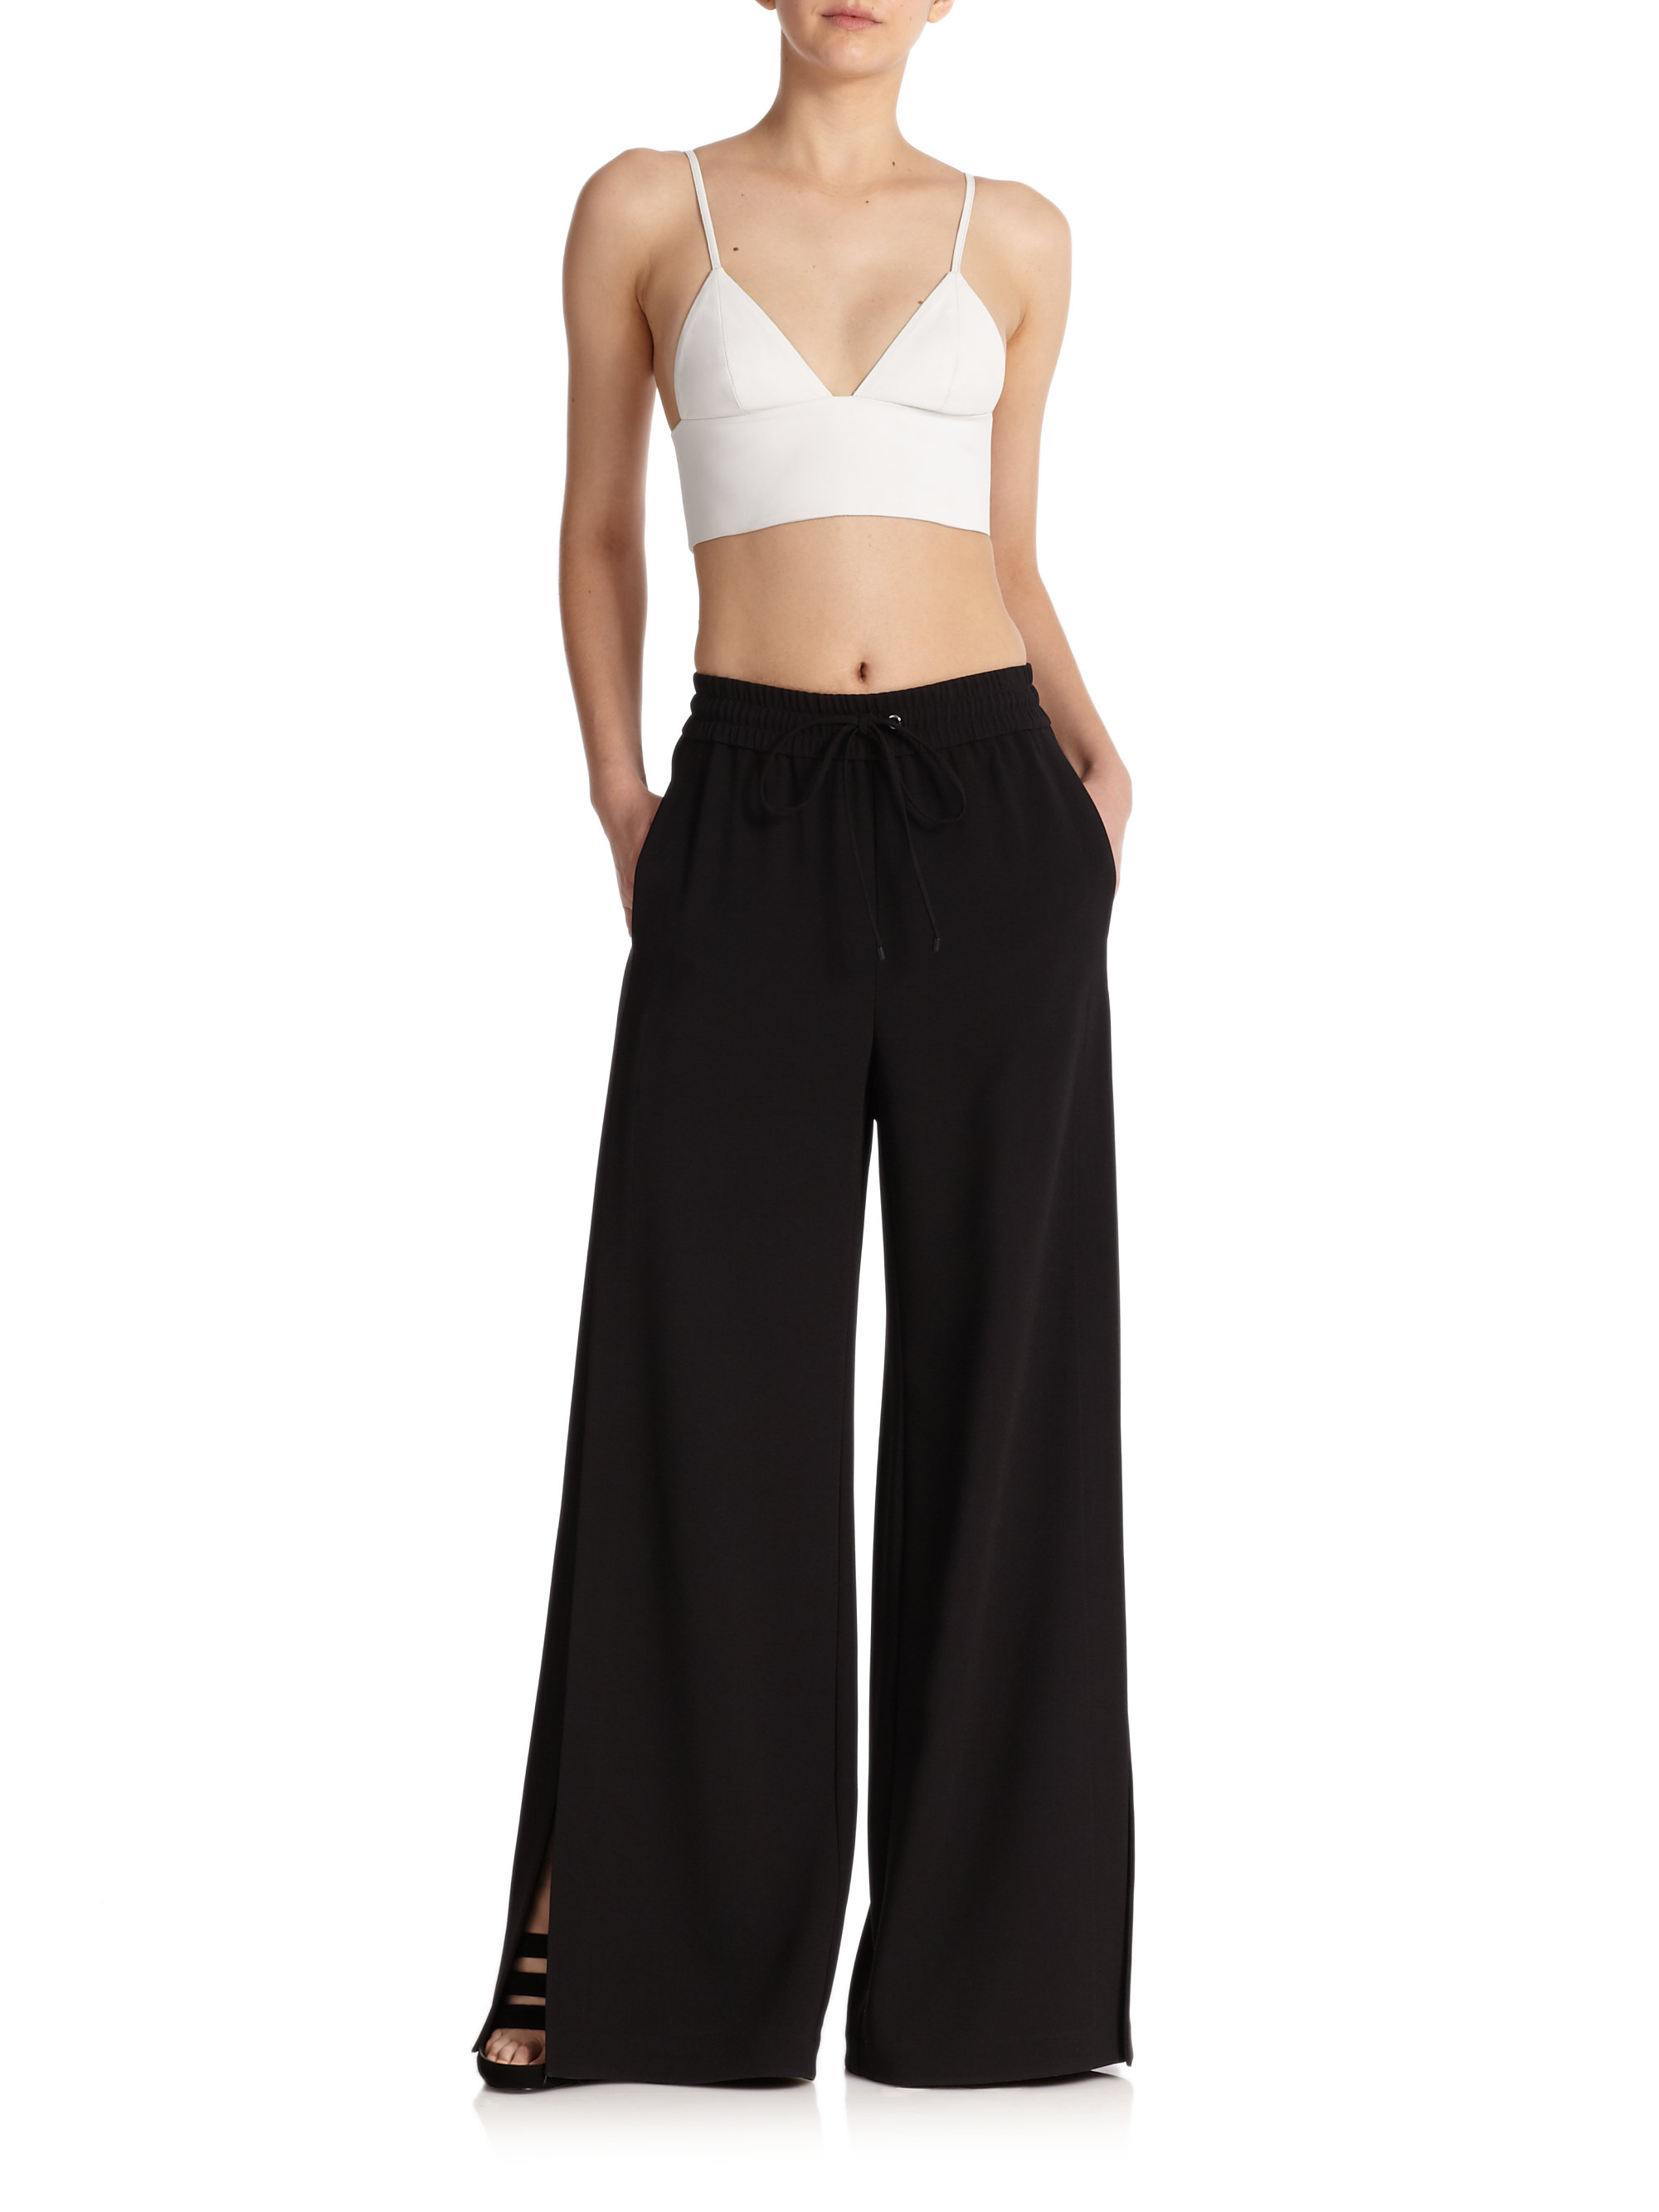 wide leg jeans - Black Alexander Wang High Quality Free Shipping Purchase Outlet Best ULXult8